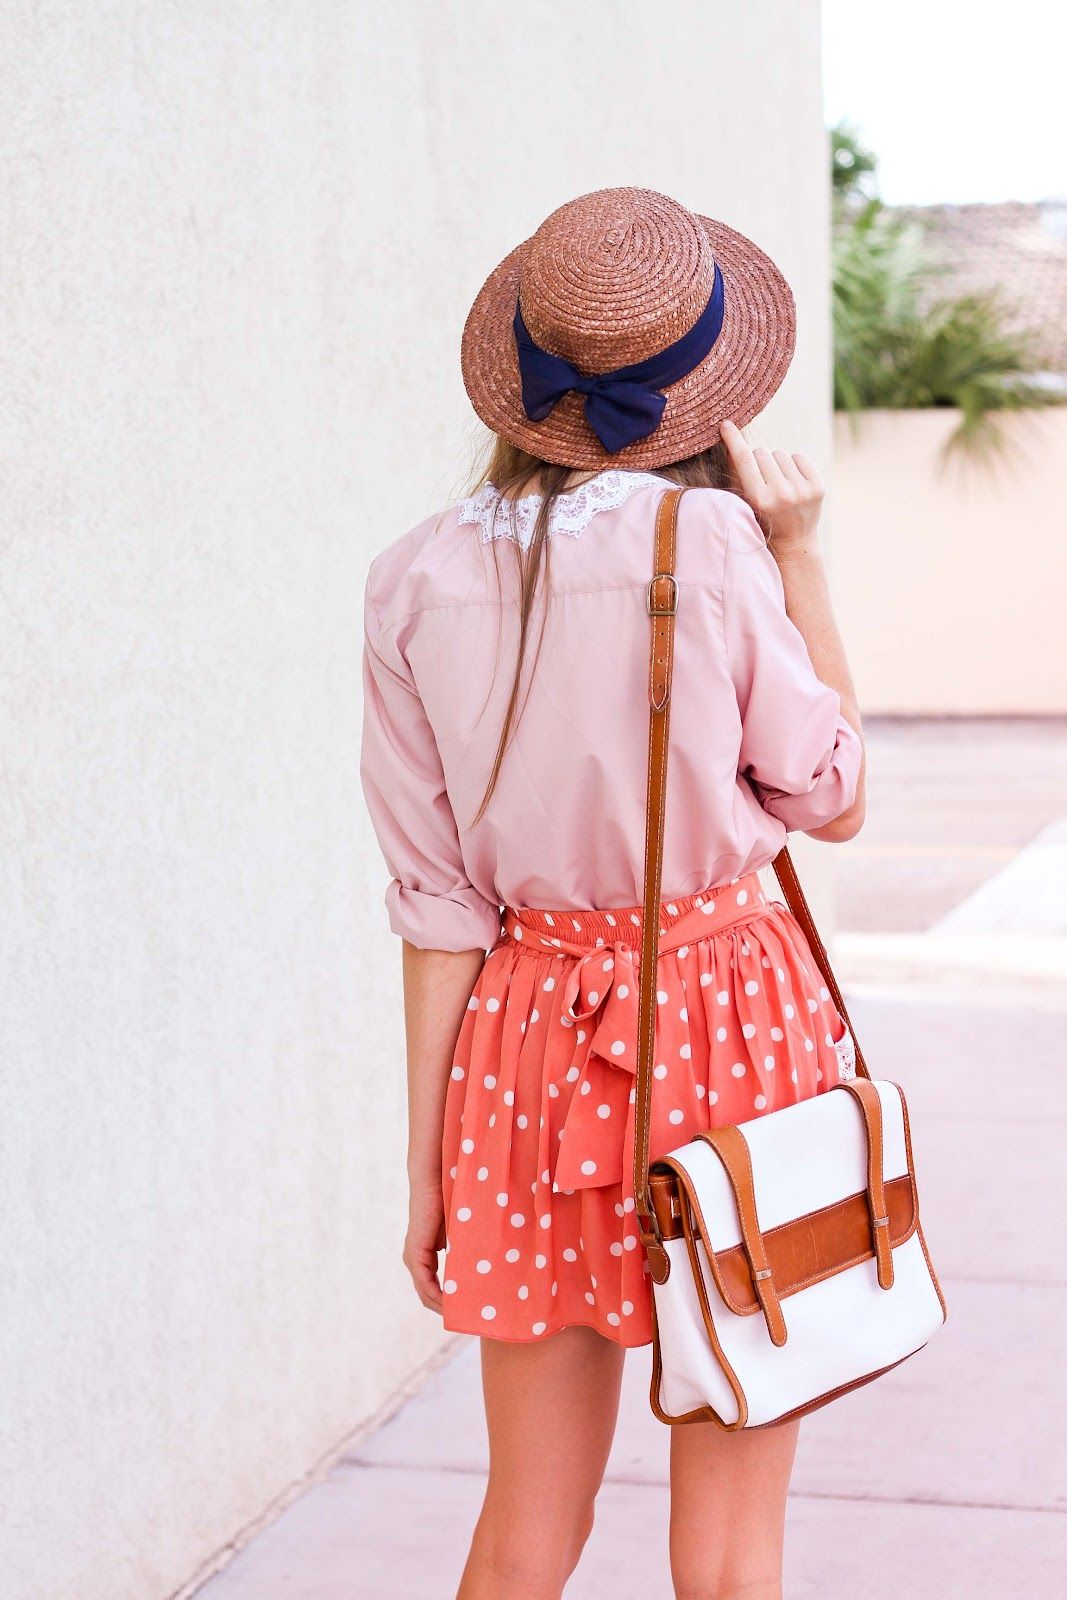 The hat adds a nice touch.. very flirty and feminine | Lovely ...